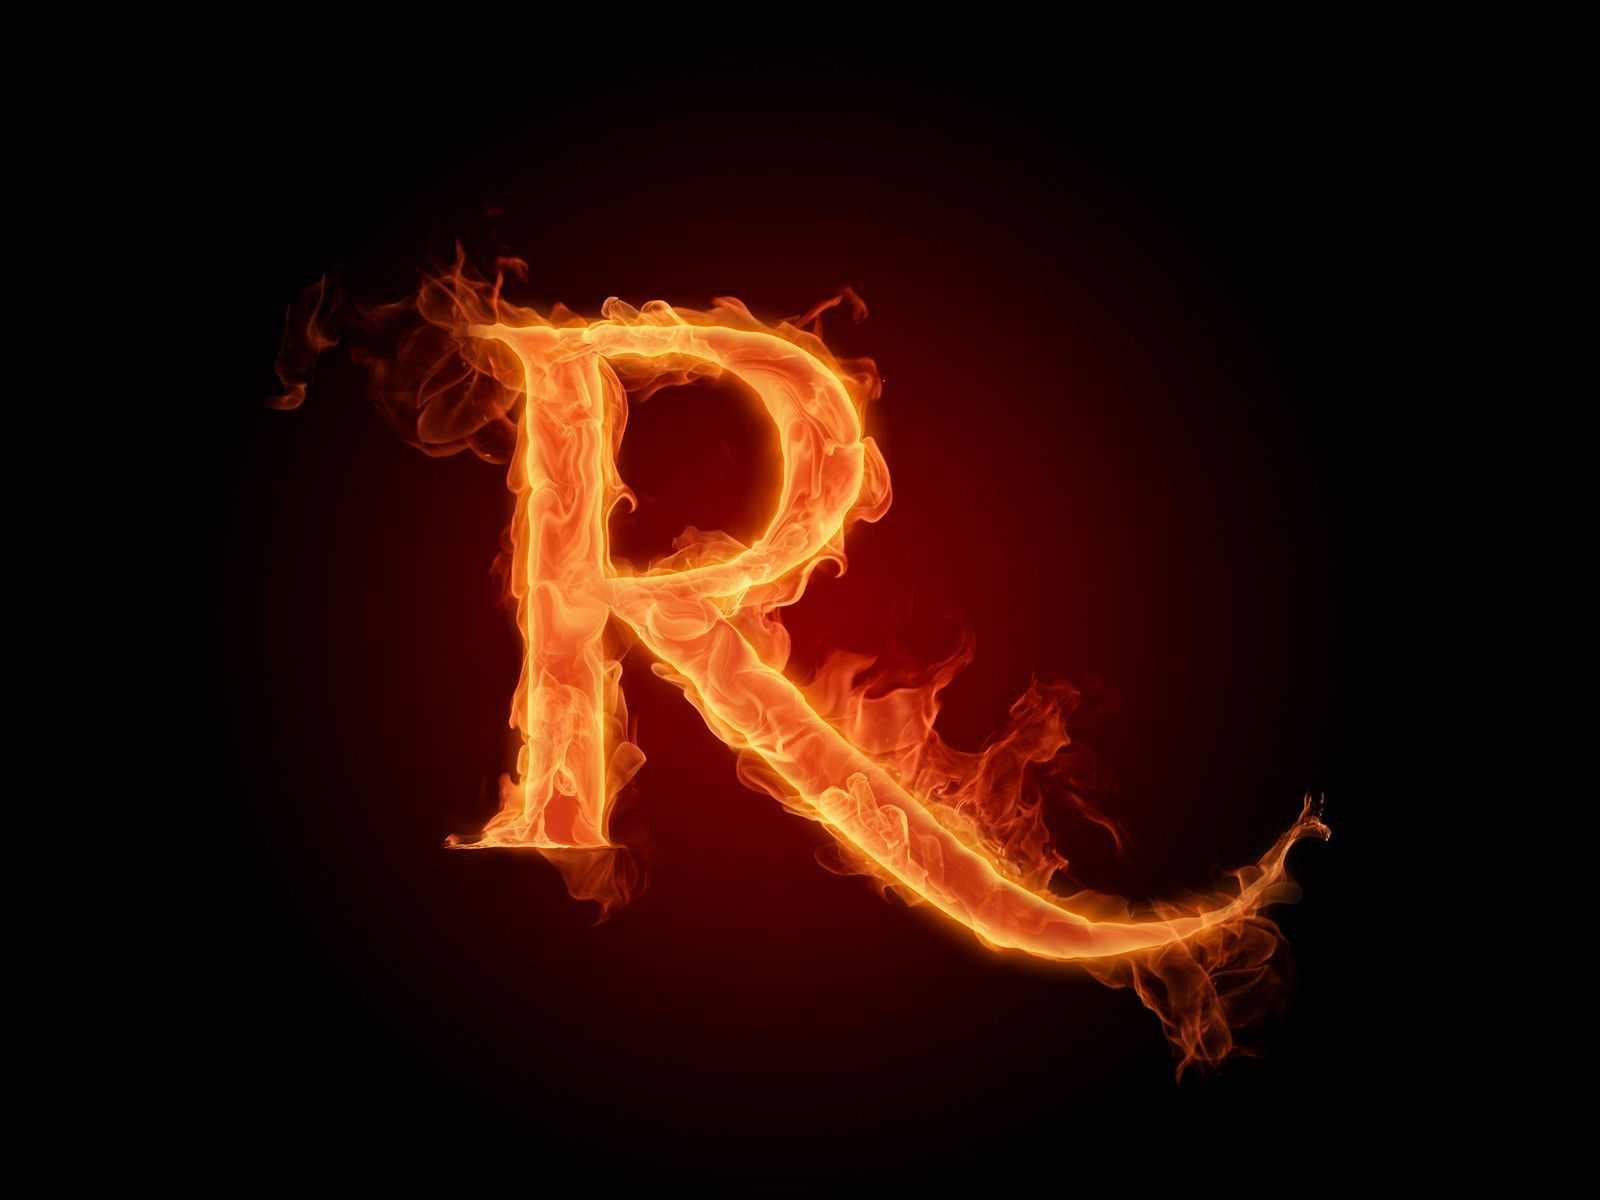 Fire Wallpapers Hd Wallpaper Cave Alphabet Images Animated Wallpapers For Mobile R Wallpaper